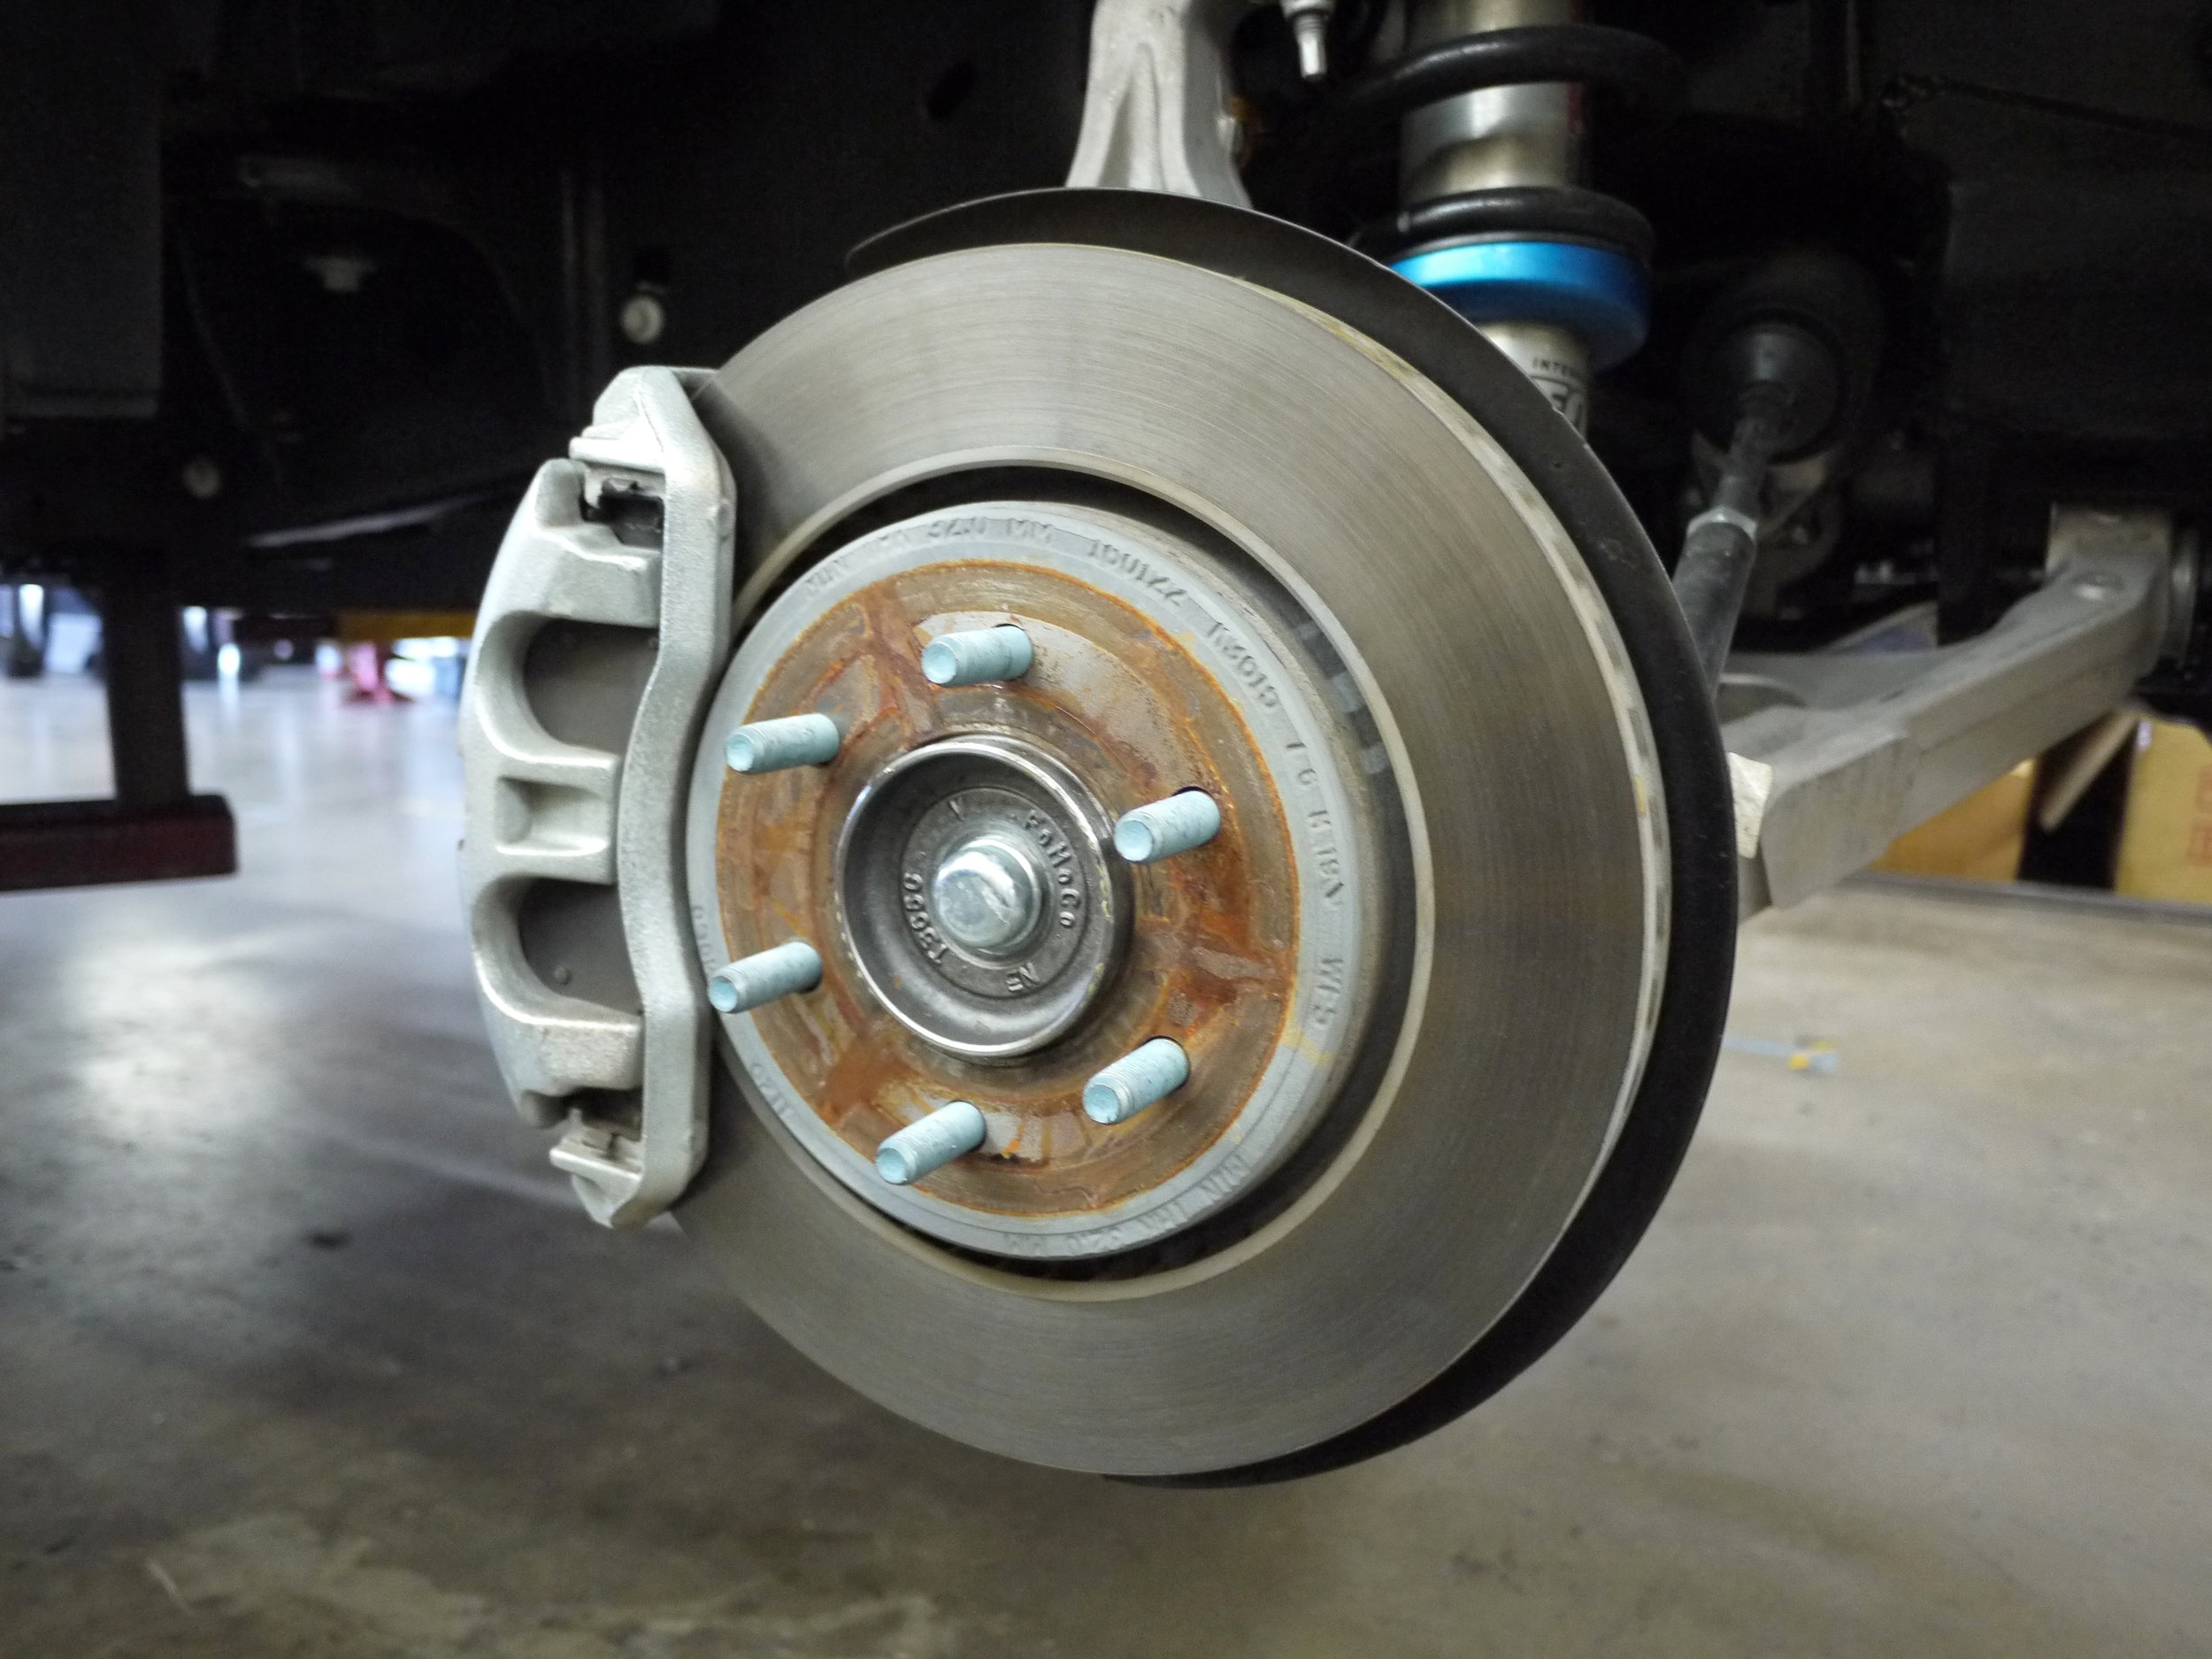 Ford F150 Raptor OE front brakes / Photo Credit: EXQUIS